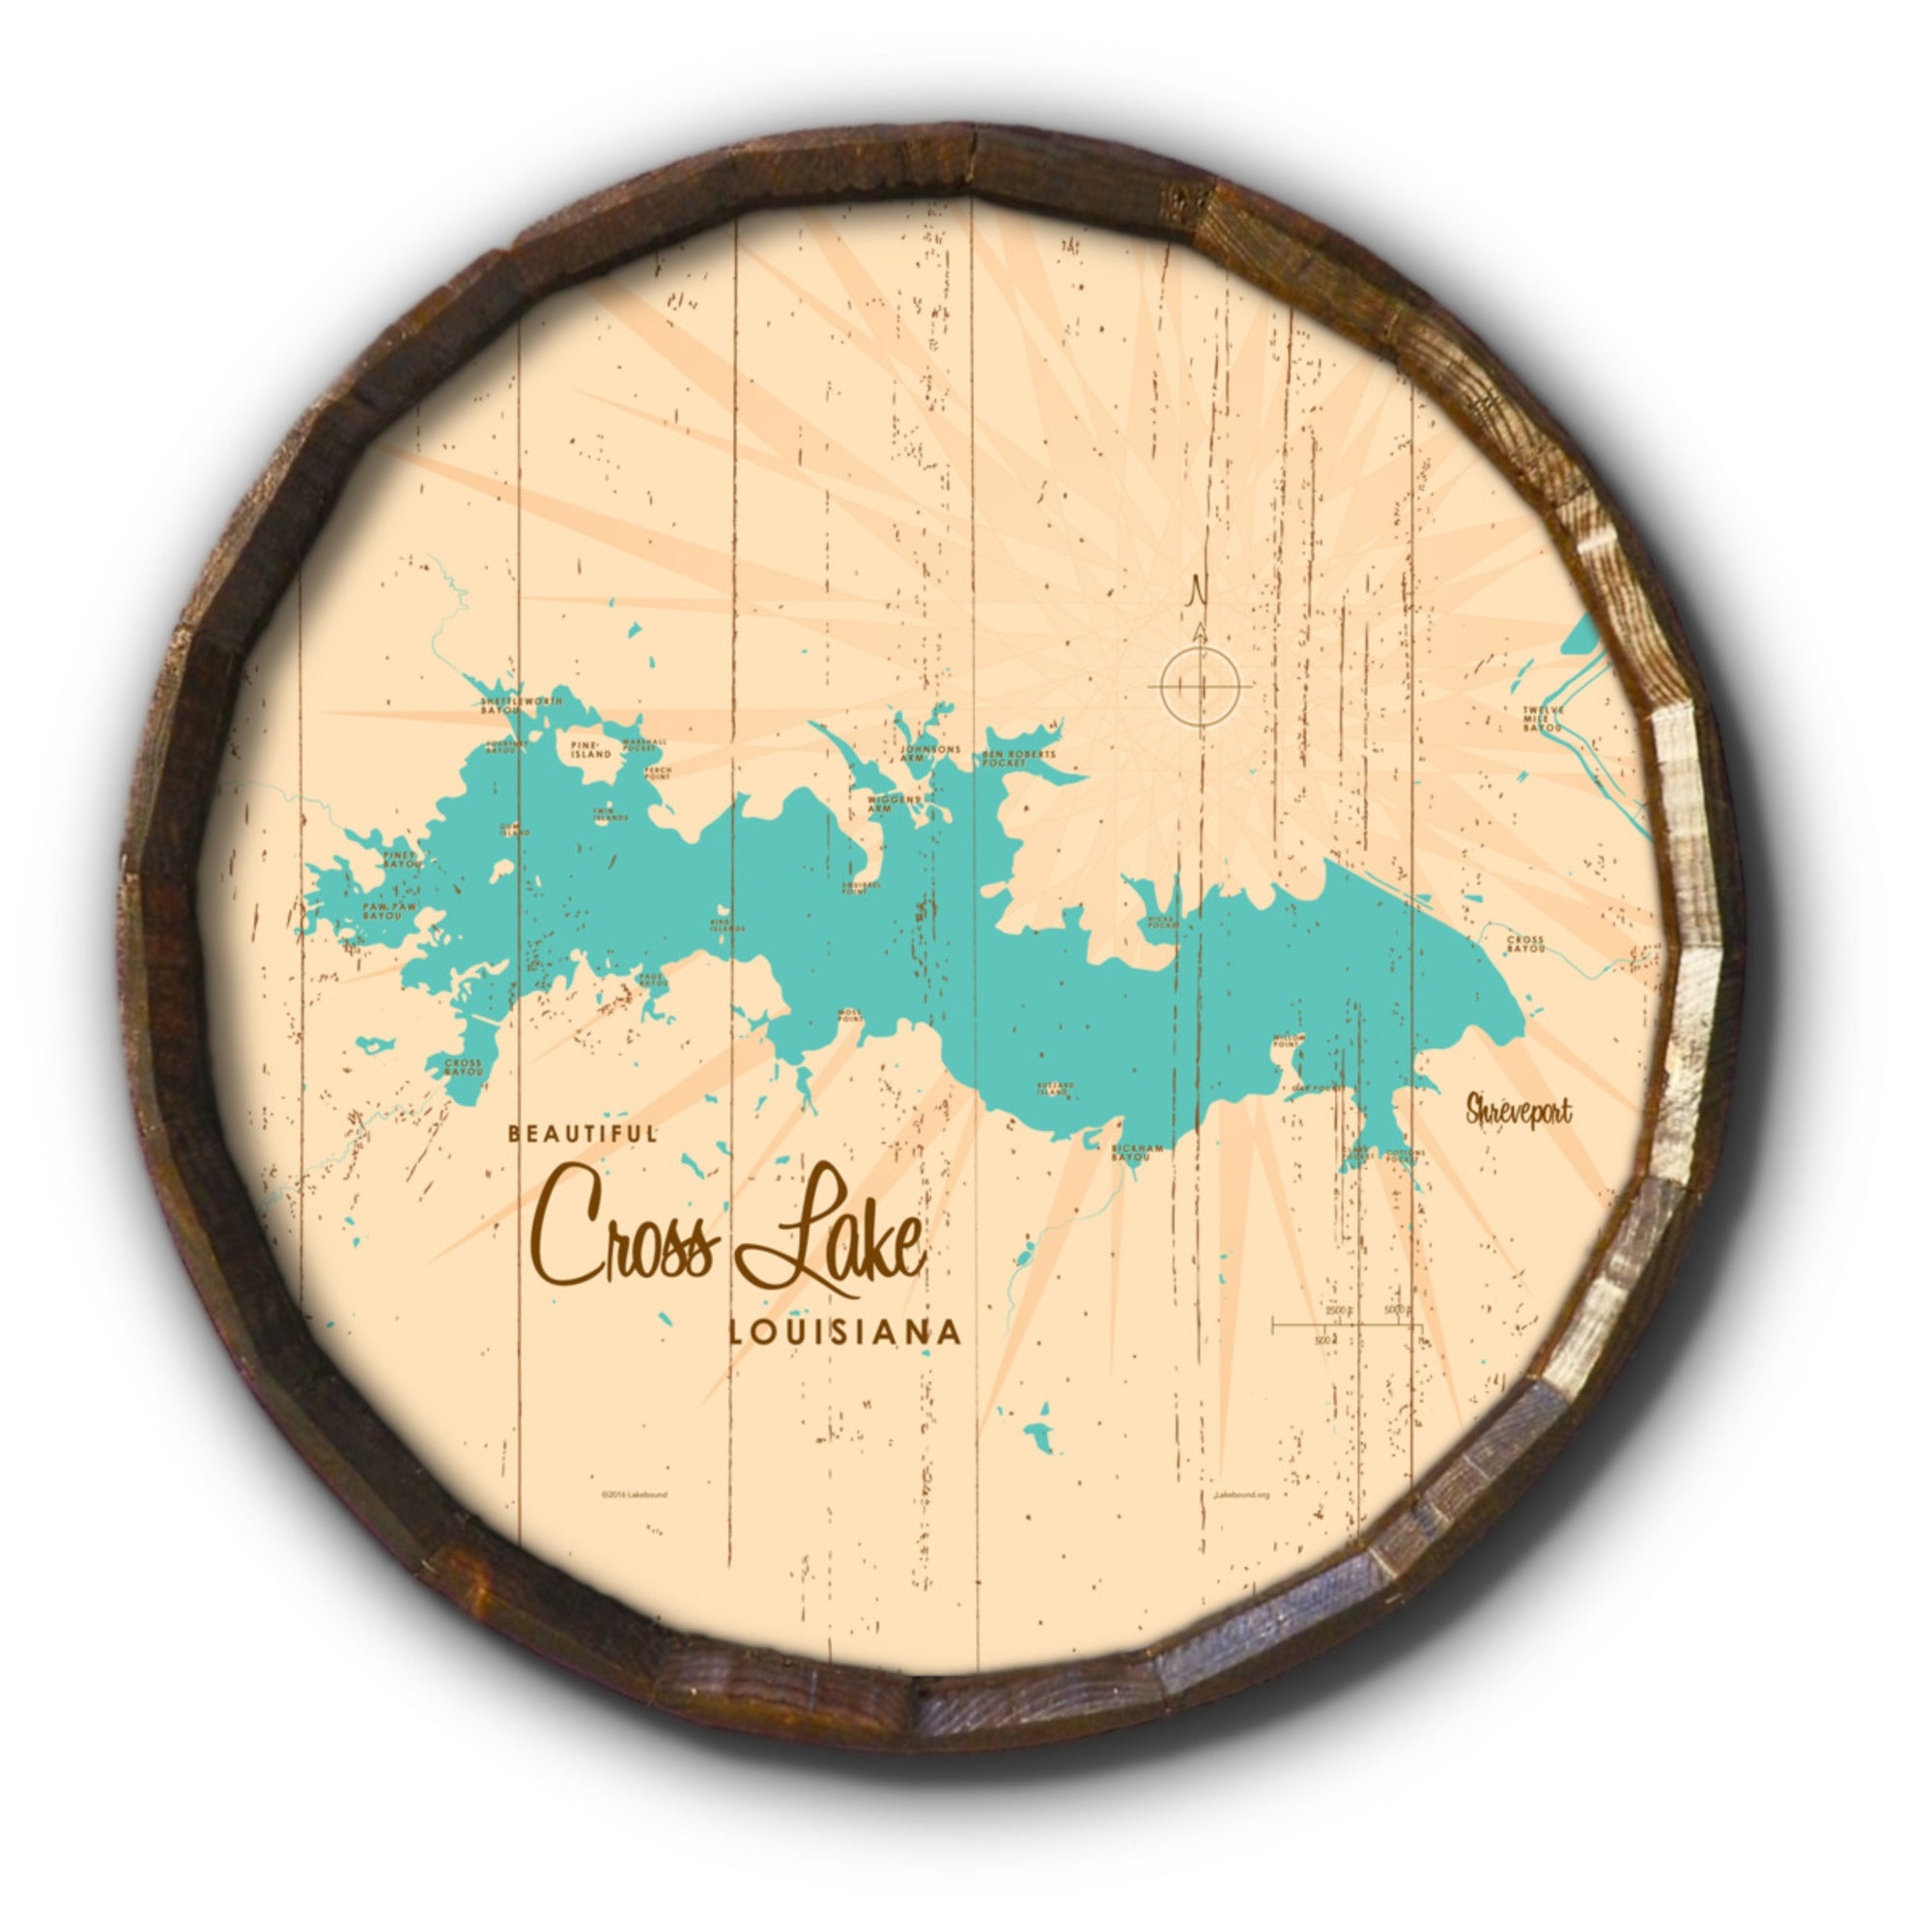 Cross Lake Louisiana, Rustic Barrel End Map Art